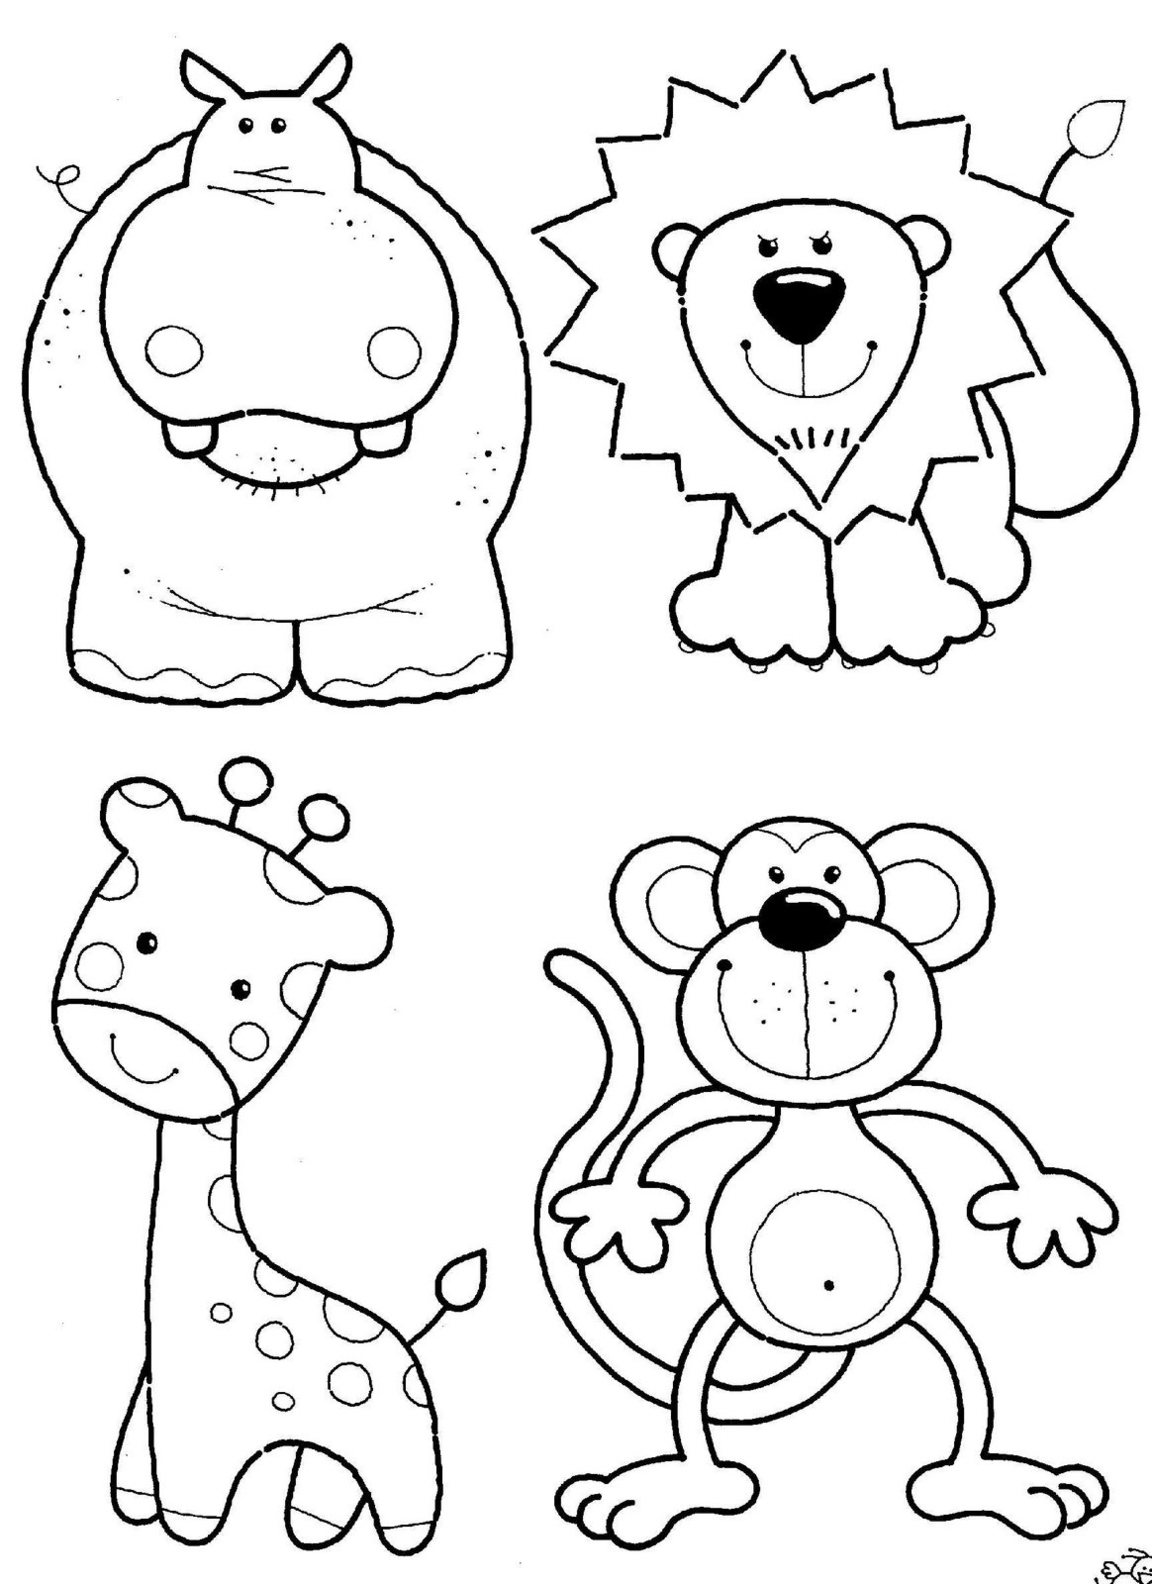 animal coloring pages for kids wild animal coloring pages best coloring pages for kids for kids animal coloring pages